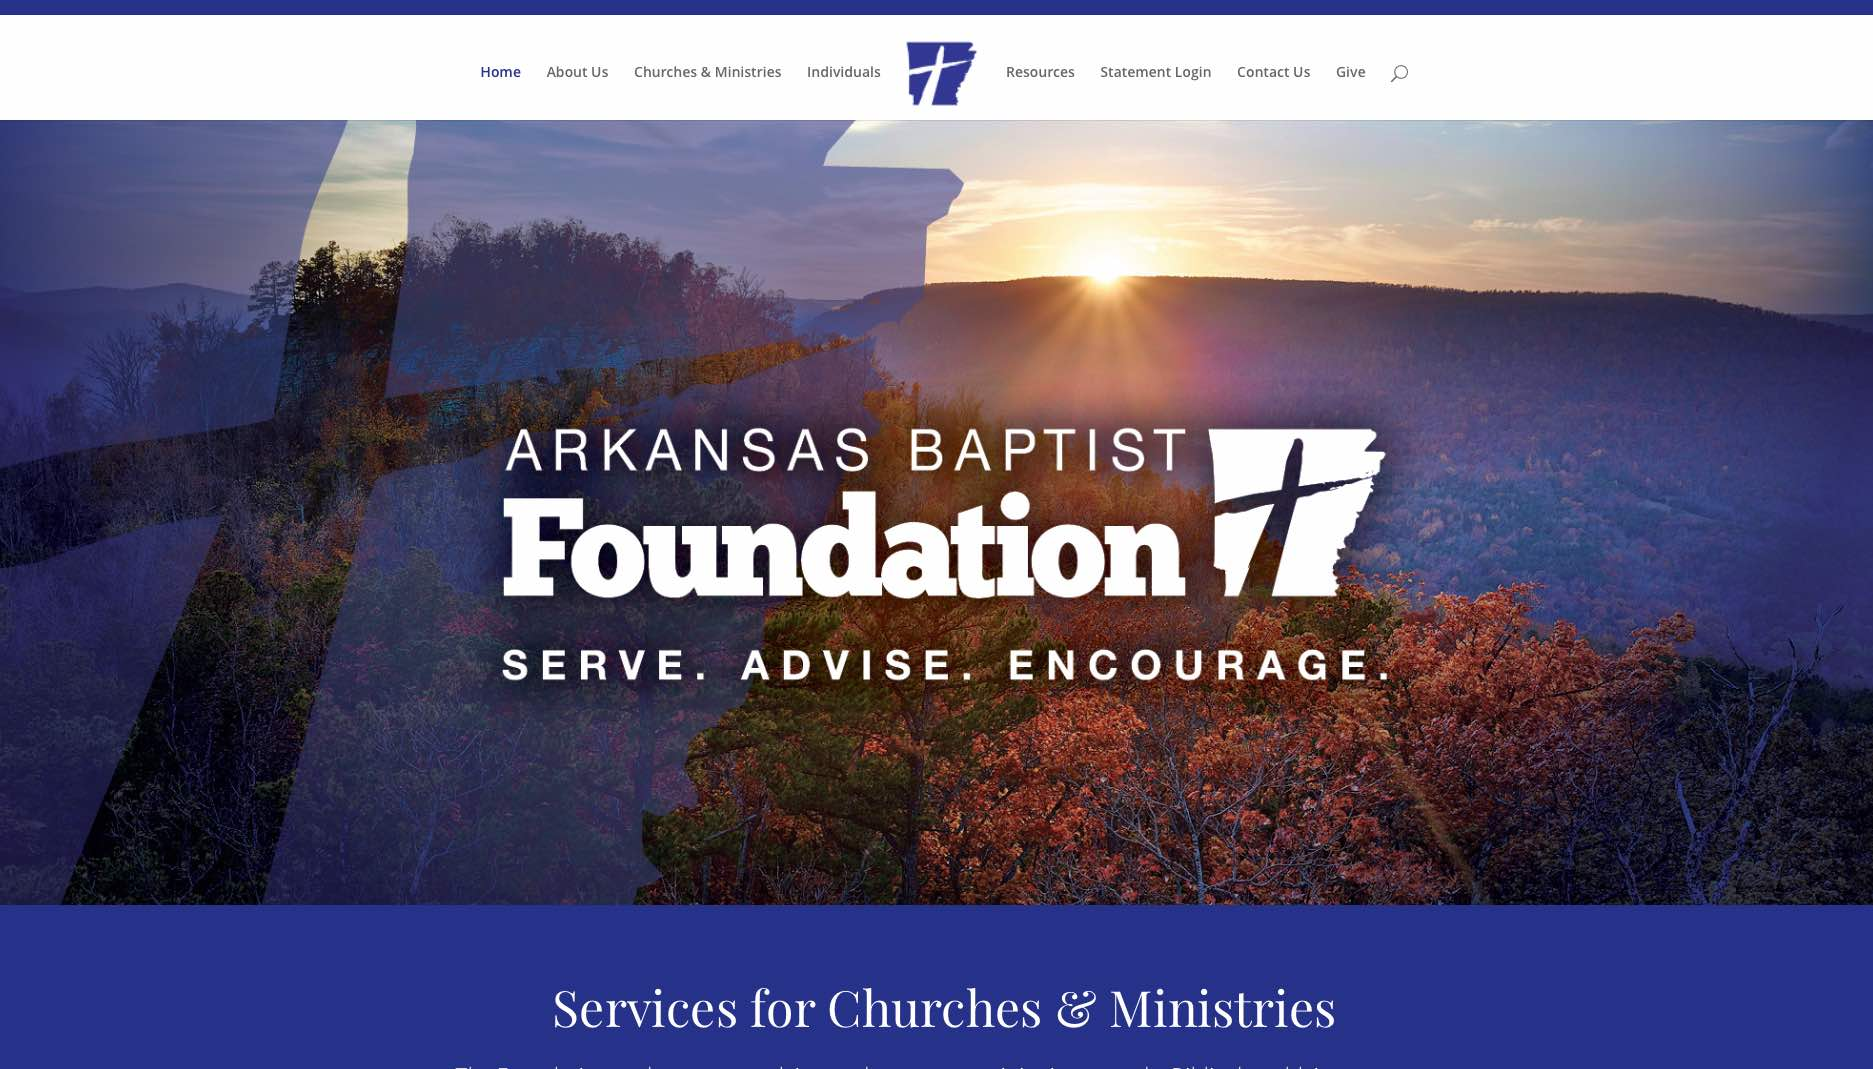 Arkansas Baptist Foundation